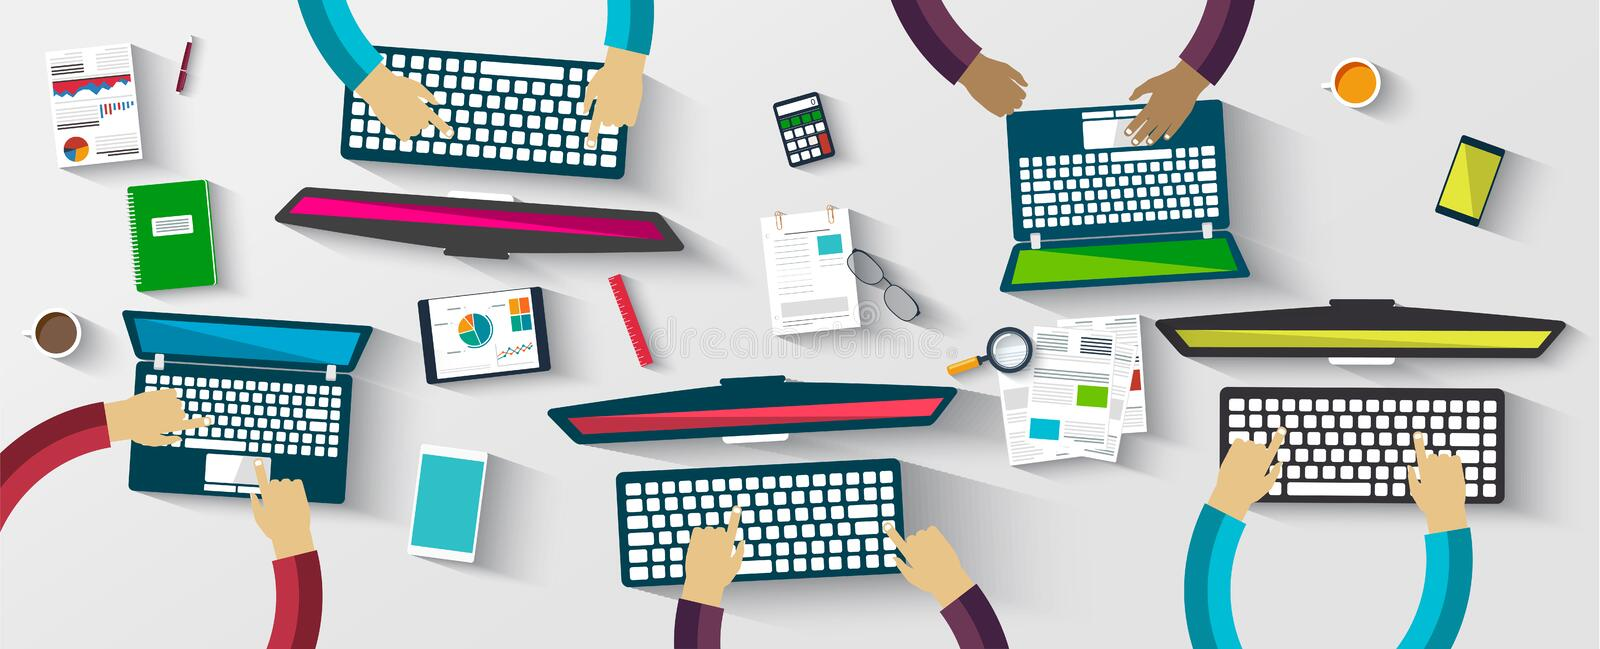 Group of business people working using digital devices. Illustration vector illustration